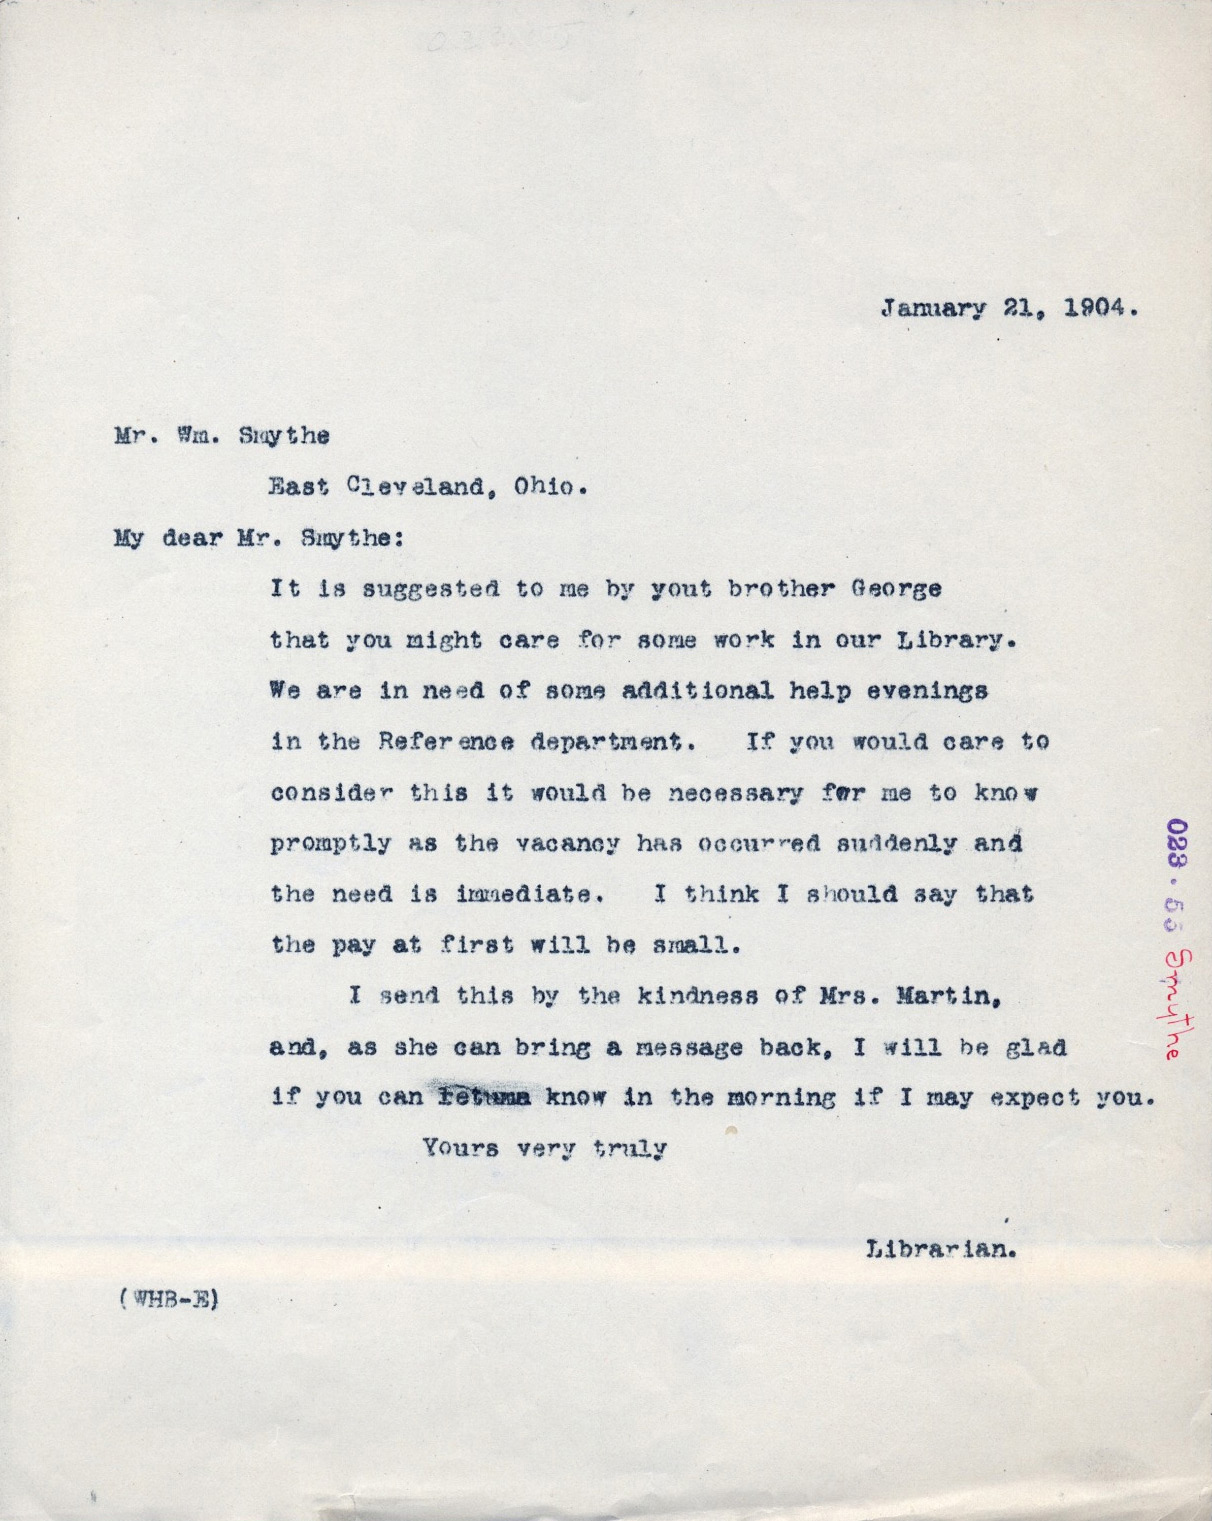 The recruitment letter from William H. Brett to William F. Smyth asking him to come work at the library. Note that the letter is dated January 21, 1904. According to Mr. Smyth's personnel file, he began work at the library on January 22, 1904.